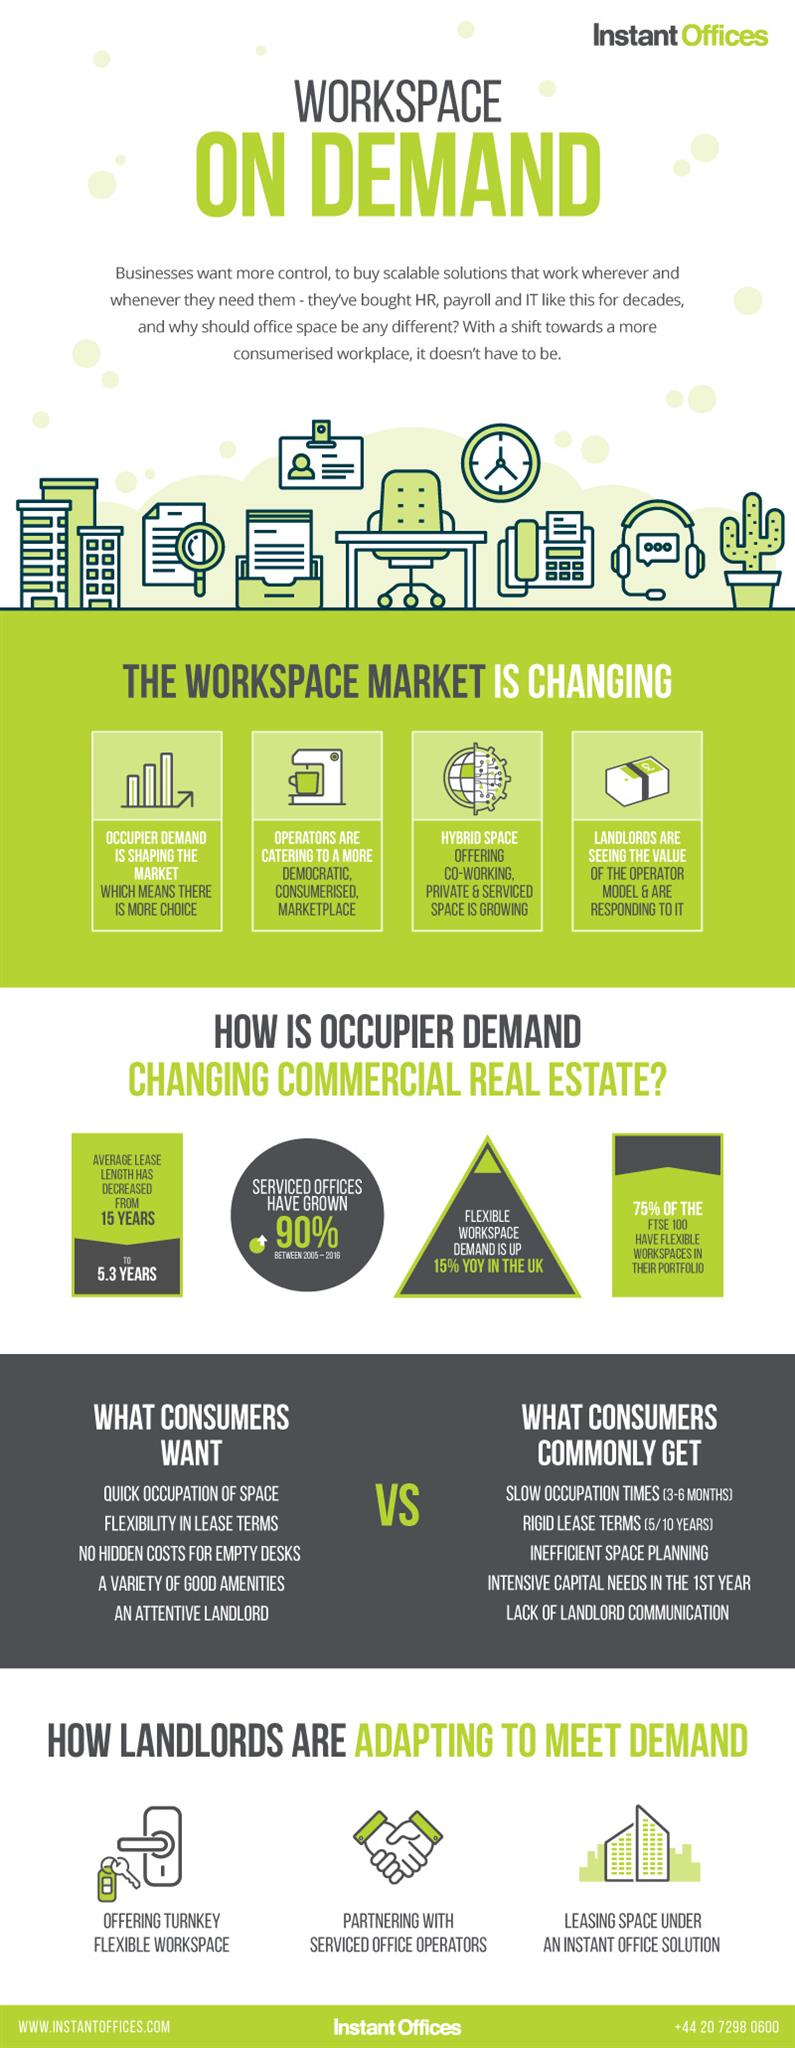 Workspace on Demand Infographic